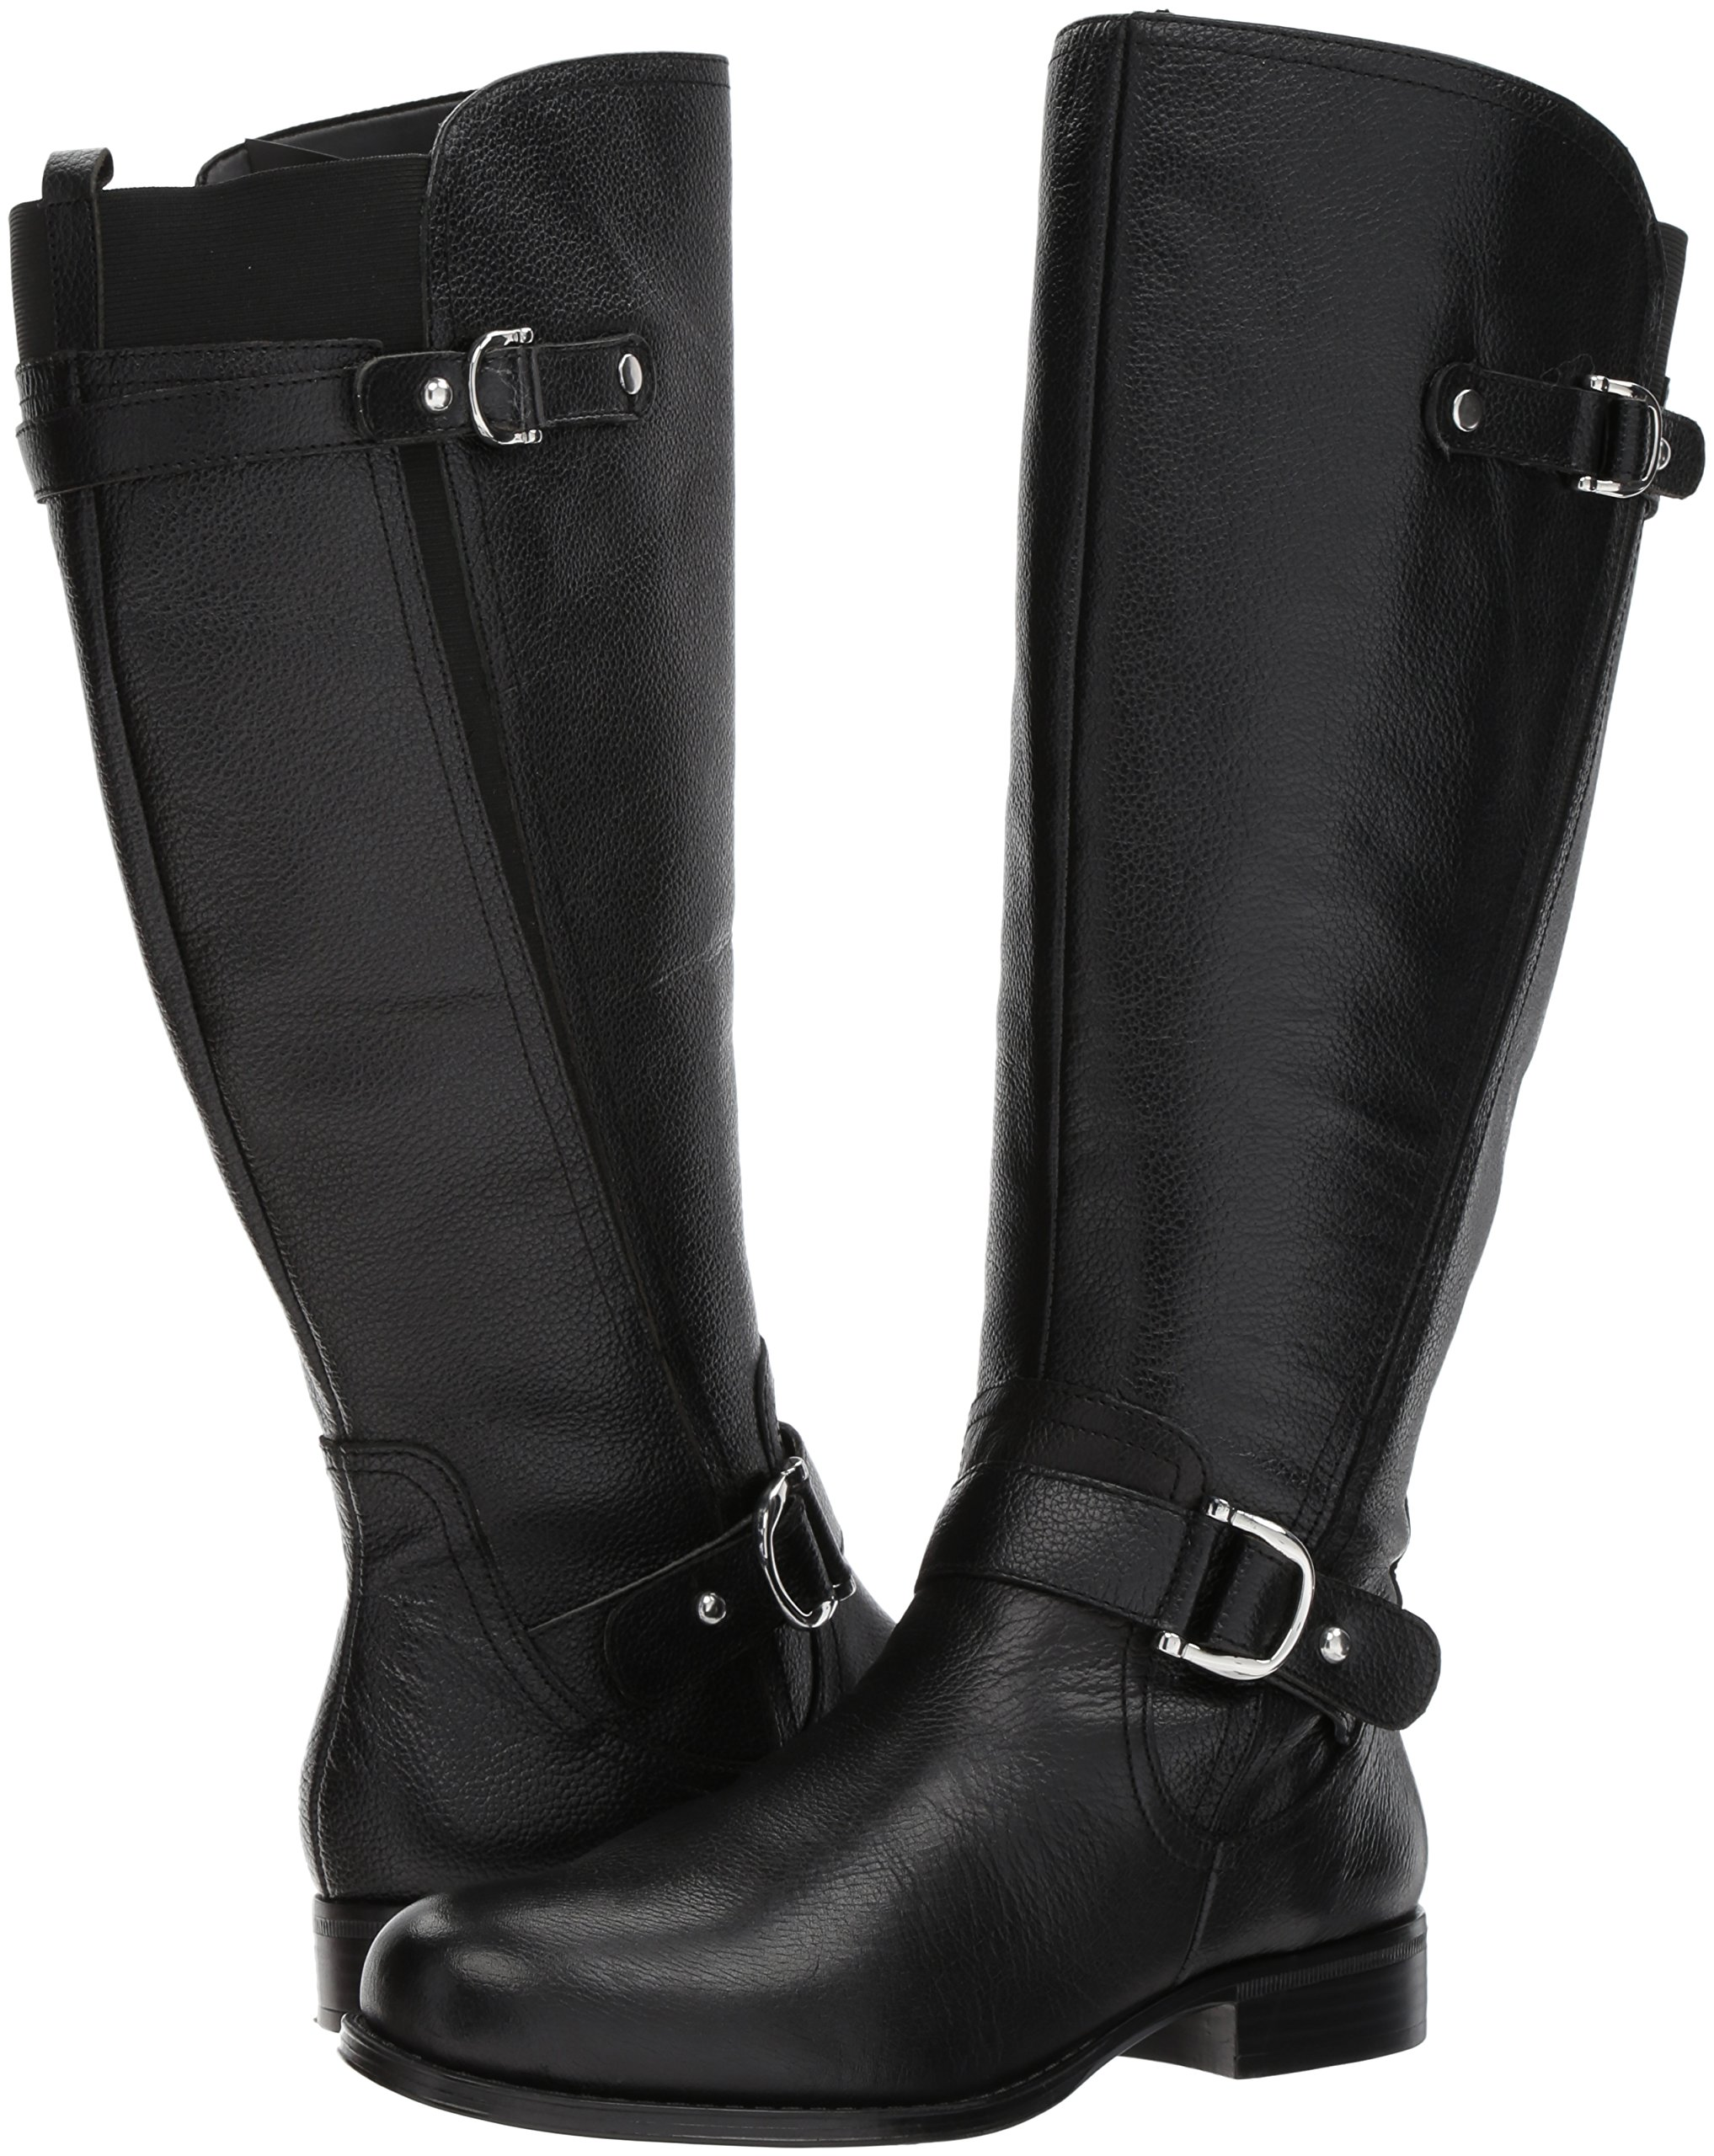 Naturalizer Women's Jenelle Wc Riding Boot, Black, 7.5 M US by Naturalizer (Image #6)